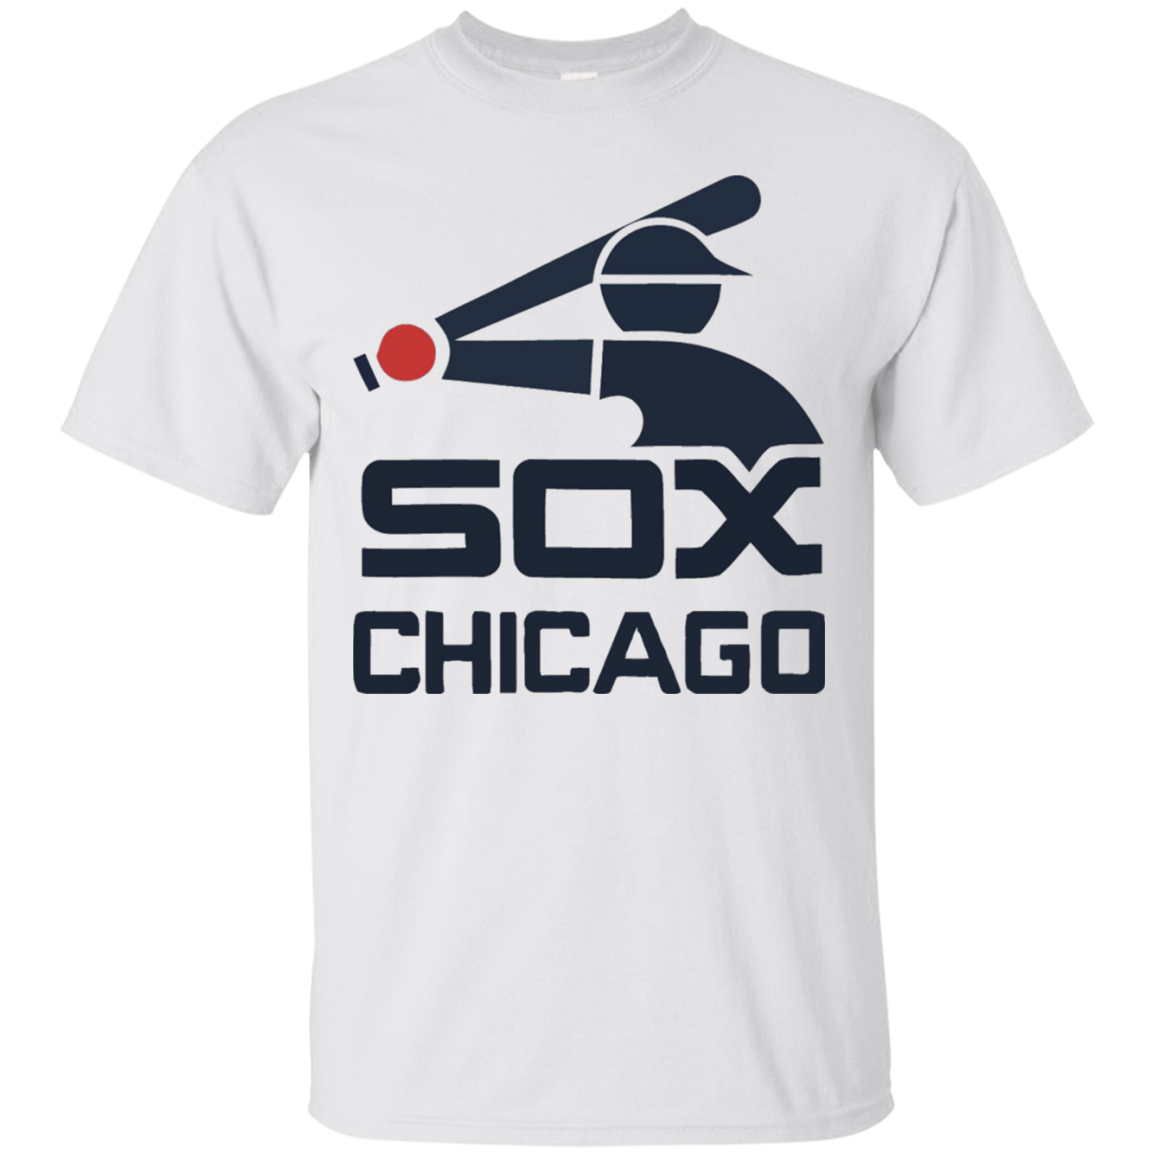 Love Chicago's White Baseball Team Sox T-Shirt